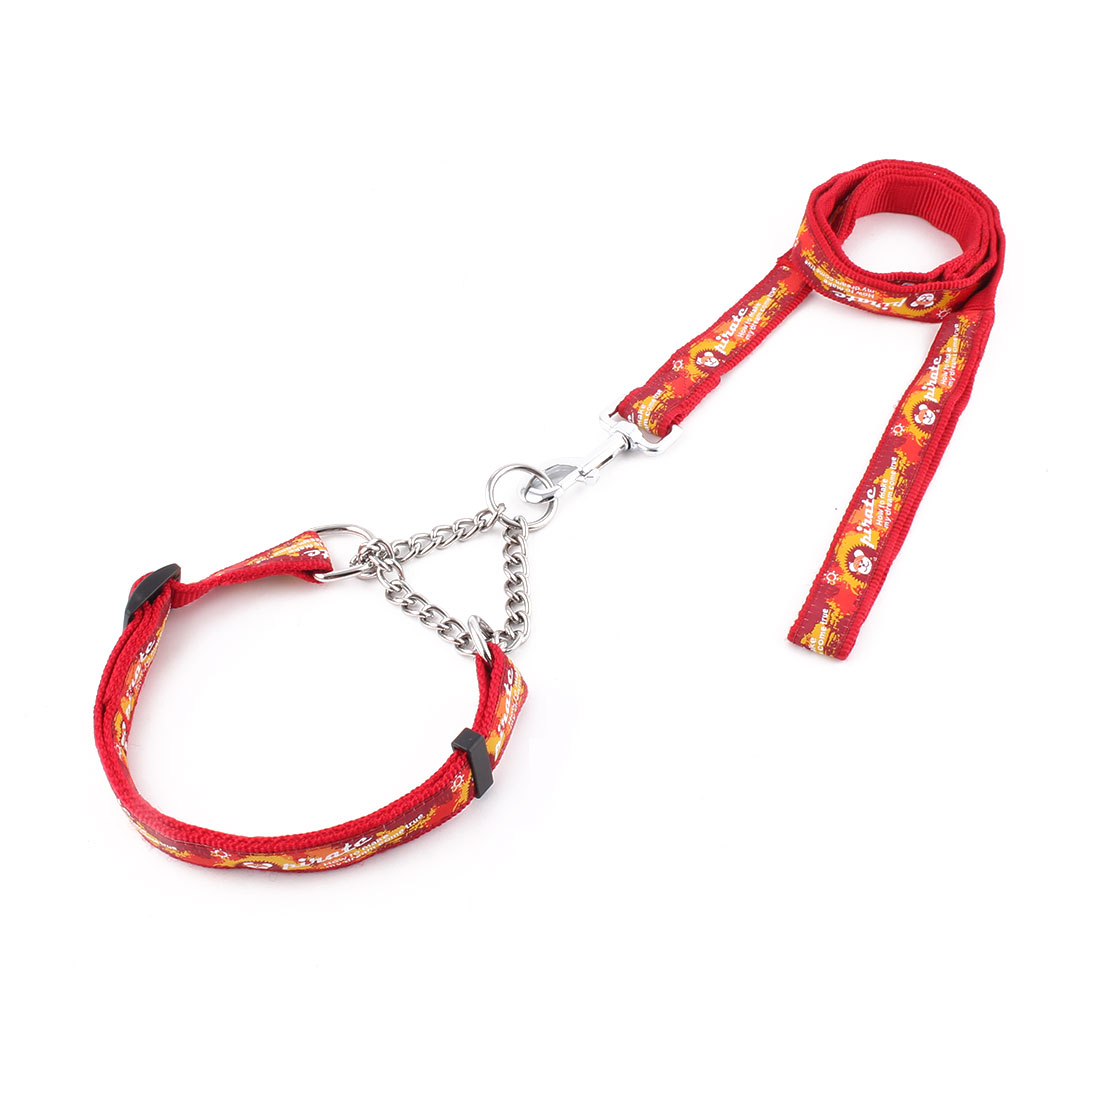 Pet Dog Nylon Pirate Pattern Neck Collar Training Lead Traction Rope Leash Red